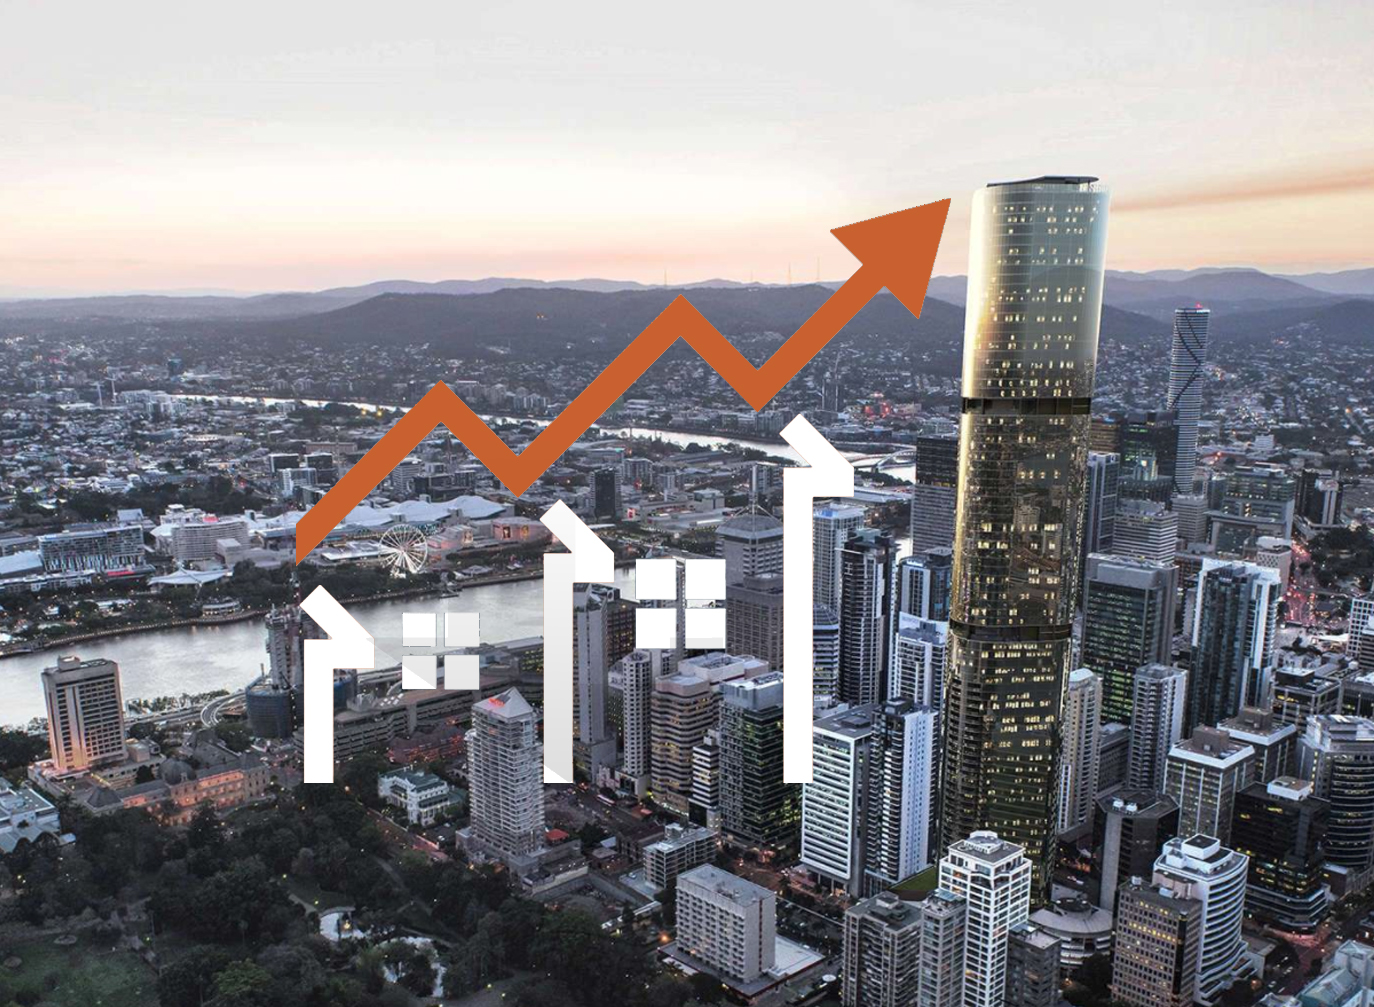 State By Housing Market Update Chart Pack October 2018 Source Diagram Brisbaneperformancecomau